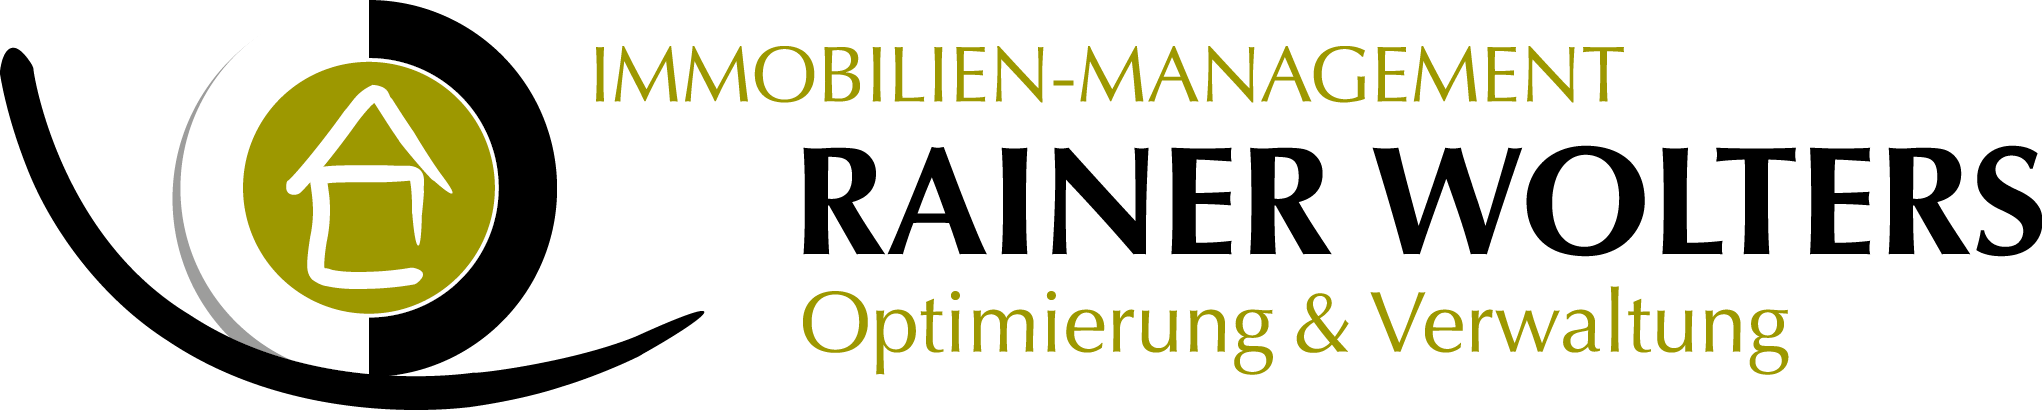 Immobilienmanagement Rainer Wolters